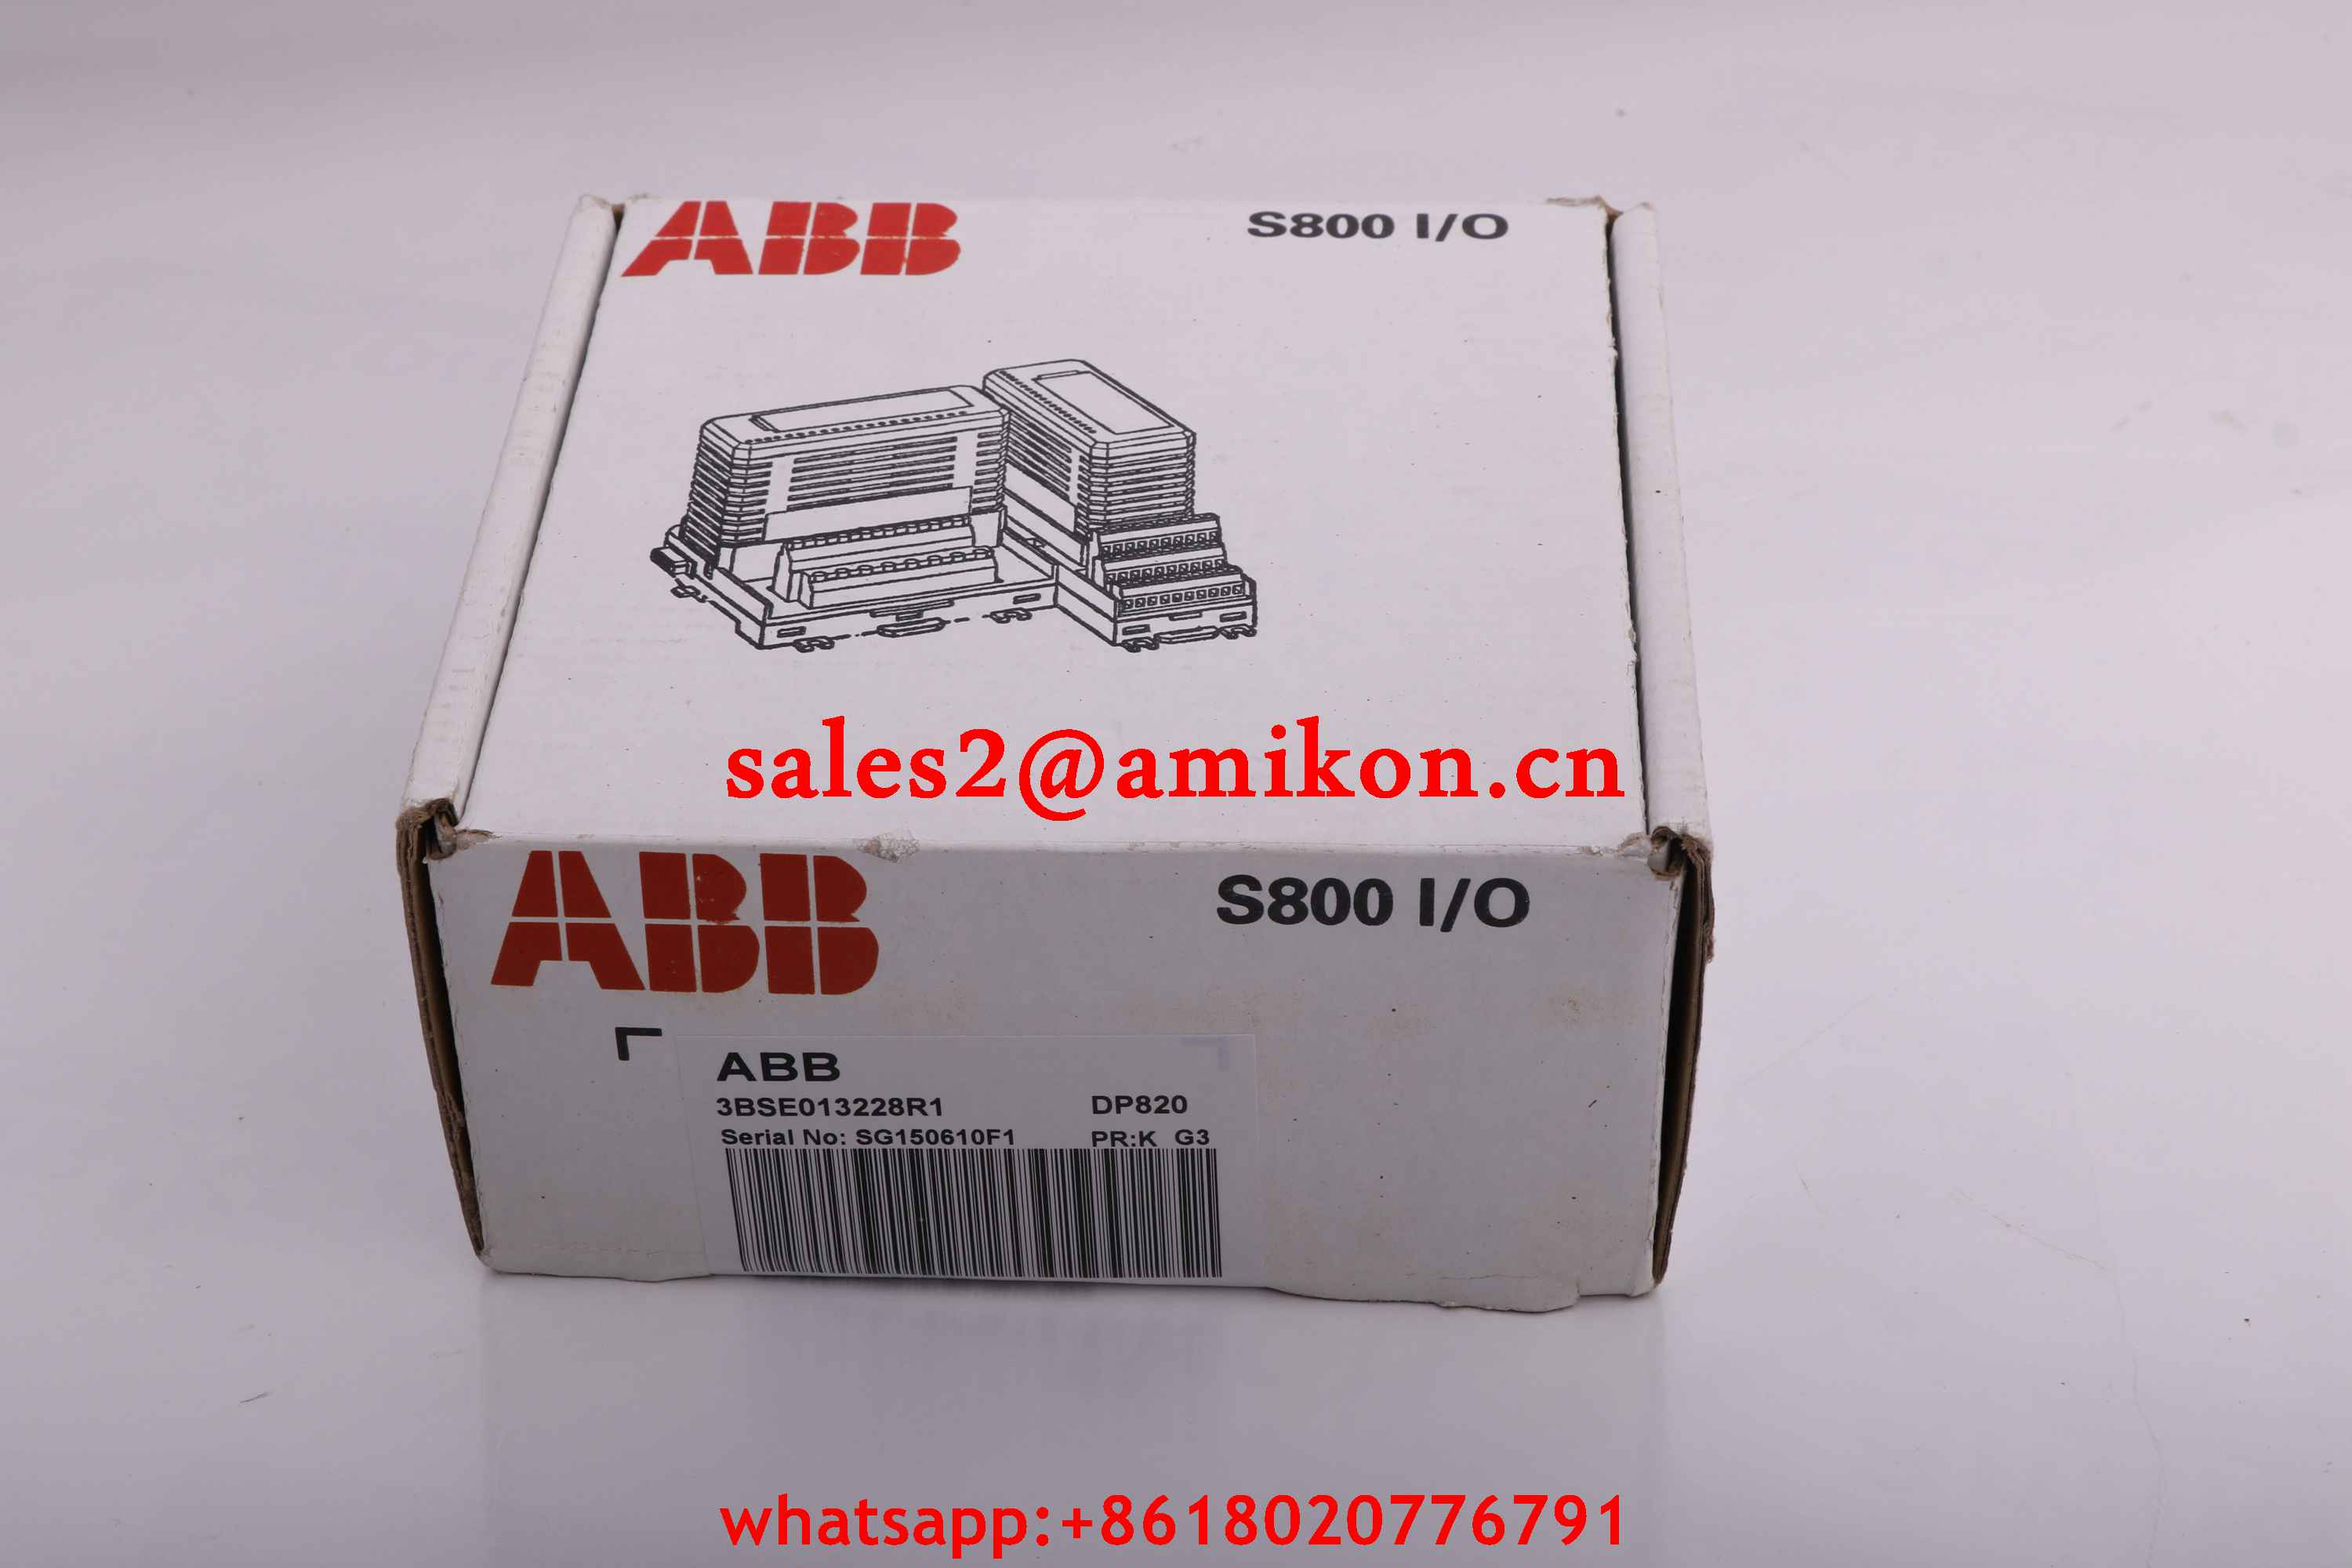 3HAA0001-CP DSQC 243 Serial measurement board ABB | Robot spare parts | PLC DCS Parts T/T 100% New In stock